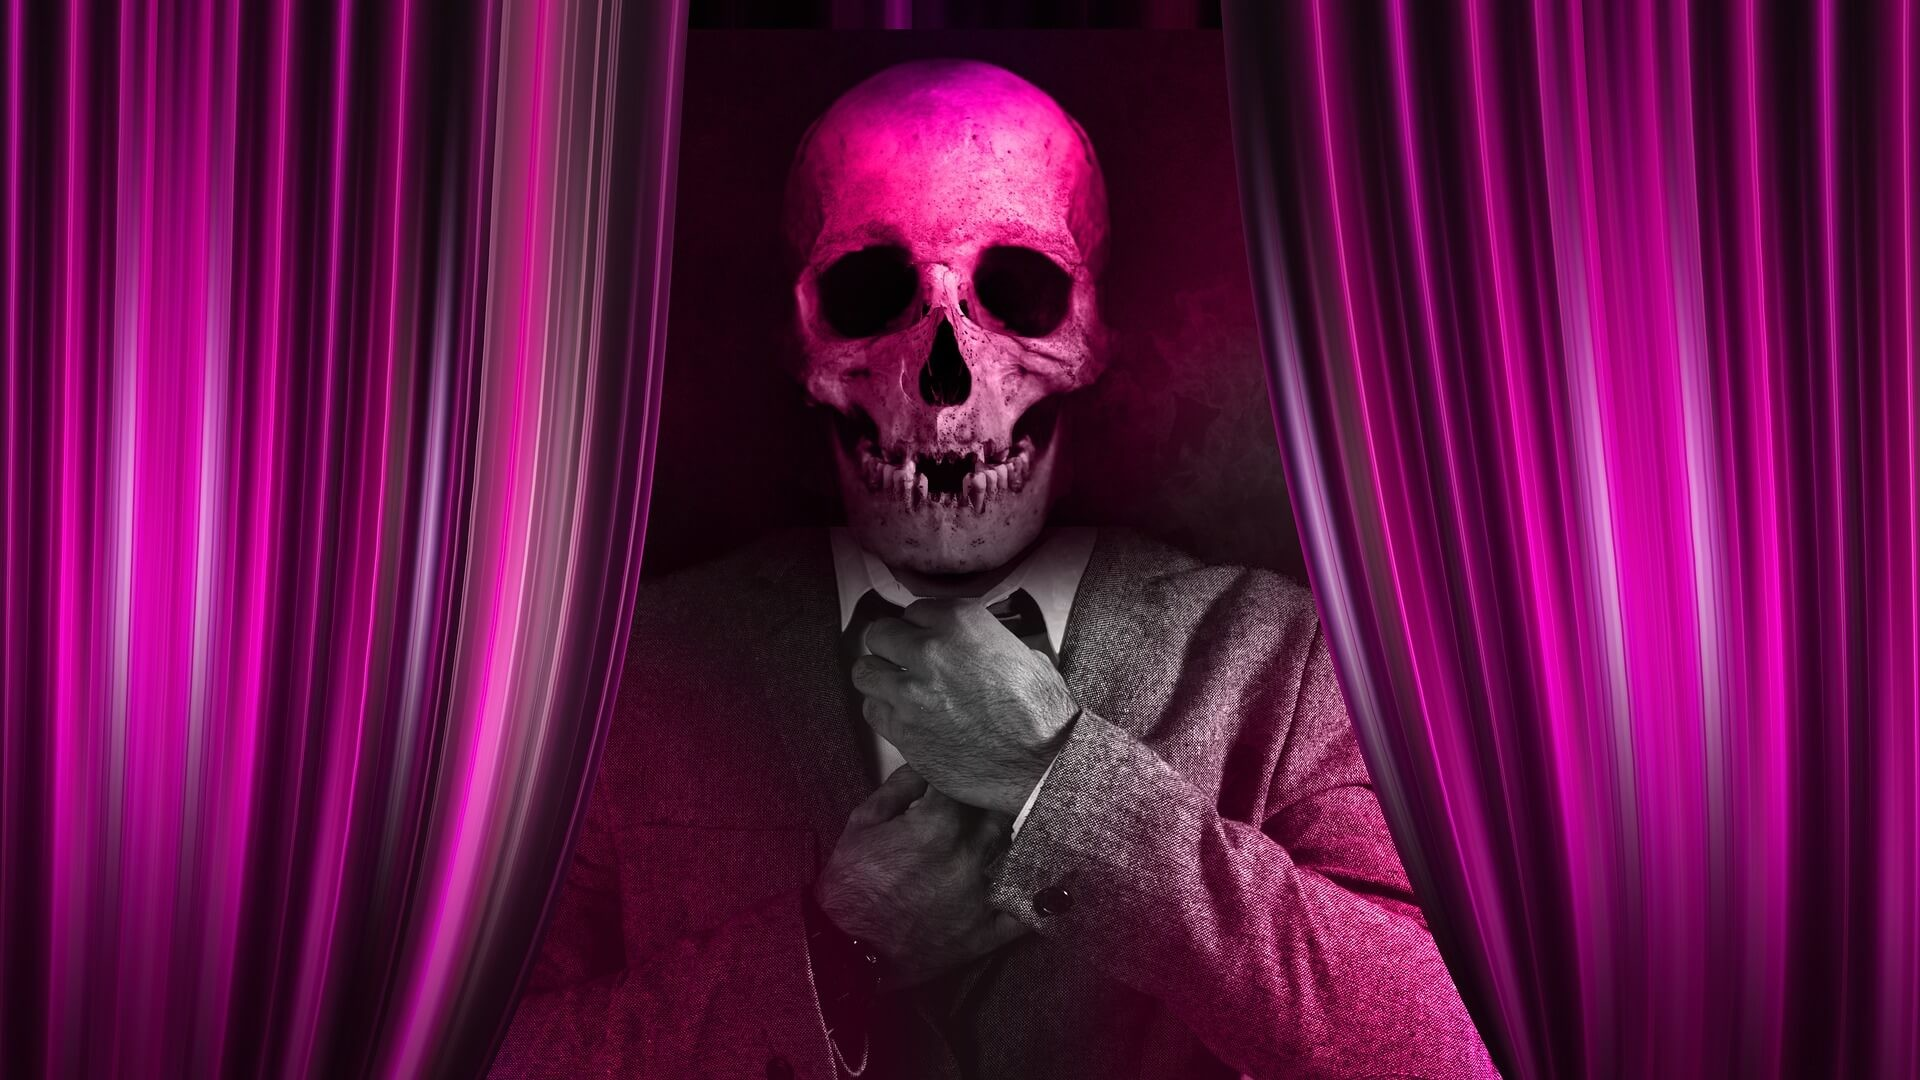 Purple Skull Wallpaper 61 Images